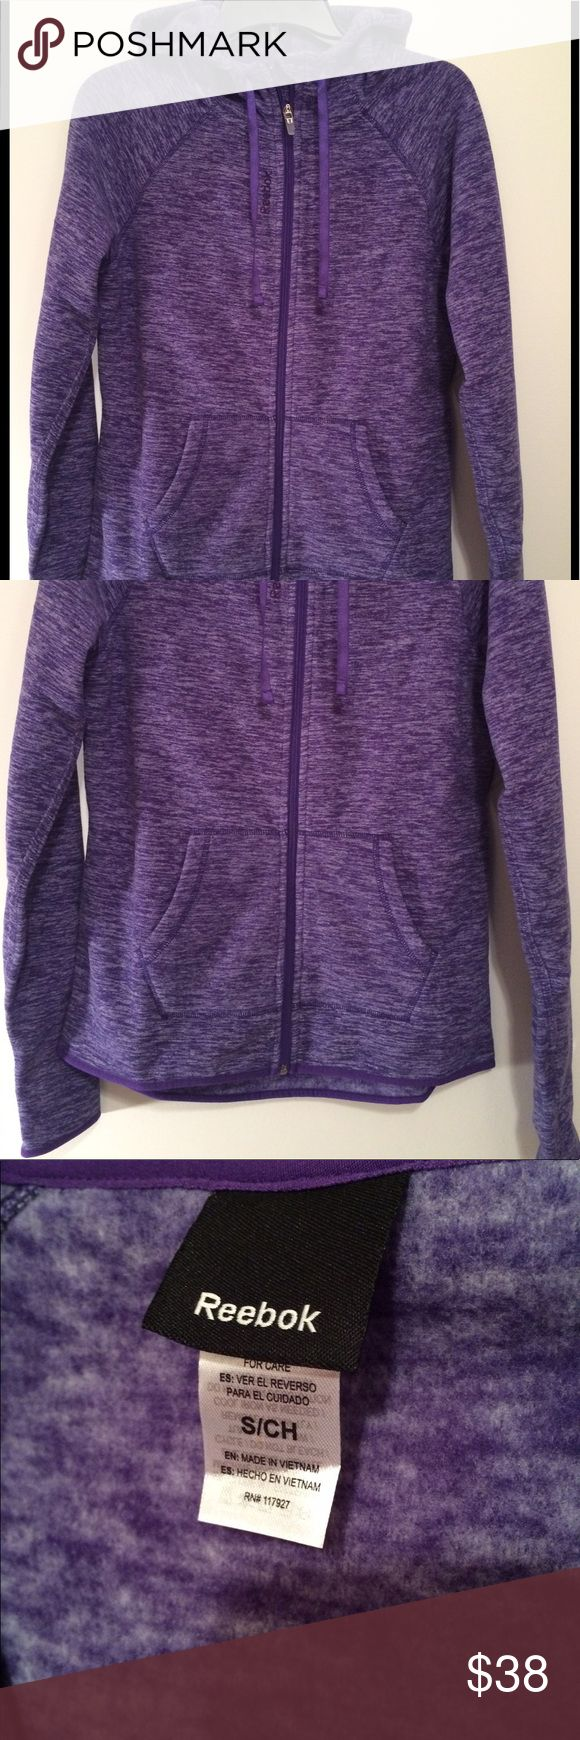 """Reebok sport small purple zip up w/thumb hole NWT Super nice purple zip up. With hood and front pockets. Heather purple with darker purple trim. Soft fabric. High low style. Approx 20"""" across and 25"""" in length and 26"""" is the back length. Thumb hole too. Reebok Jackets & Coats"""